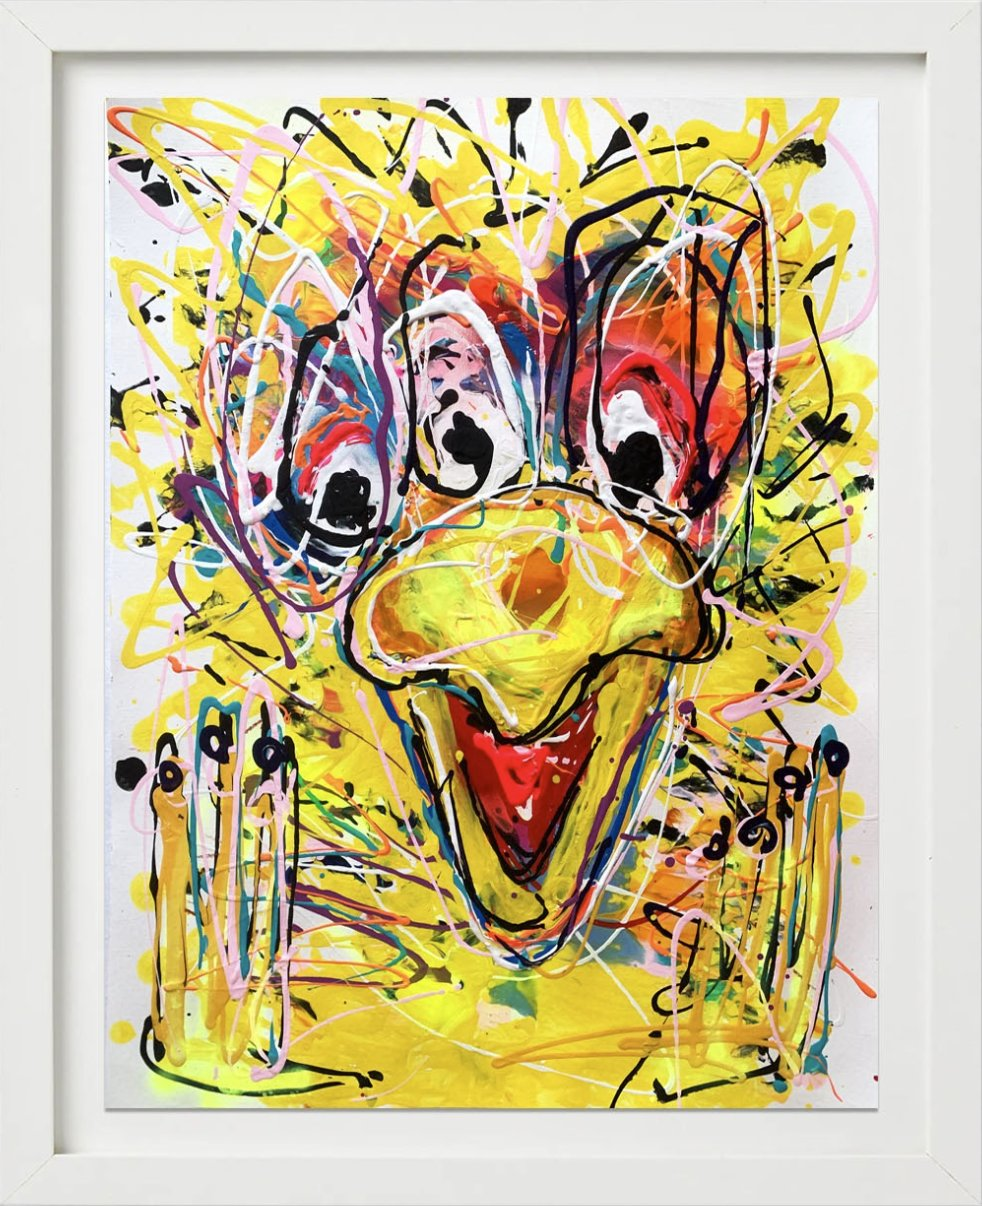 Follow That Bird No. 2 by John Paul Fauves